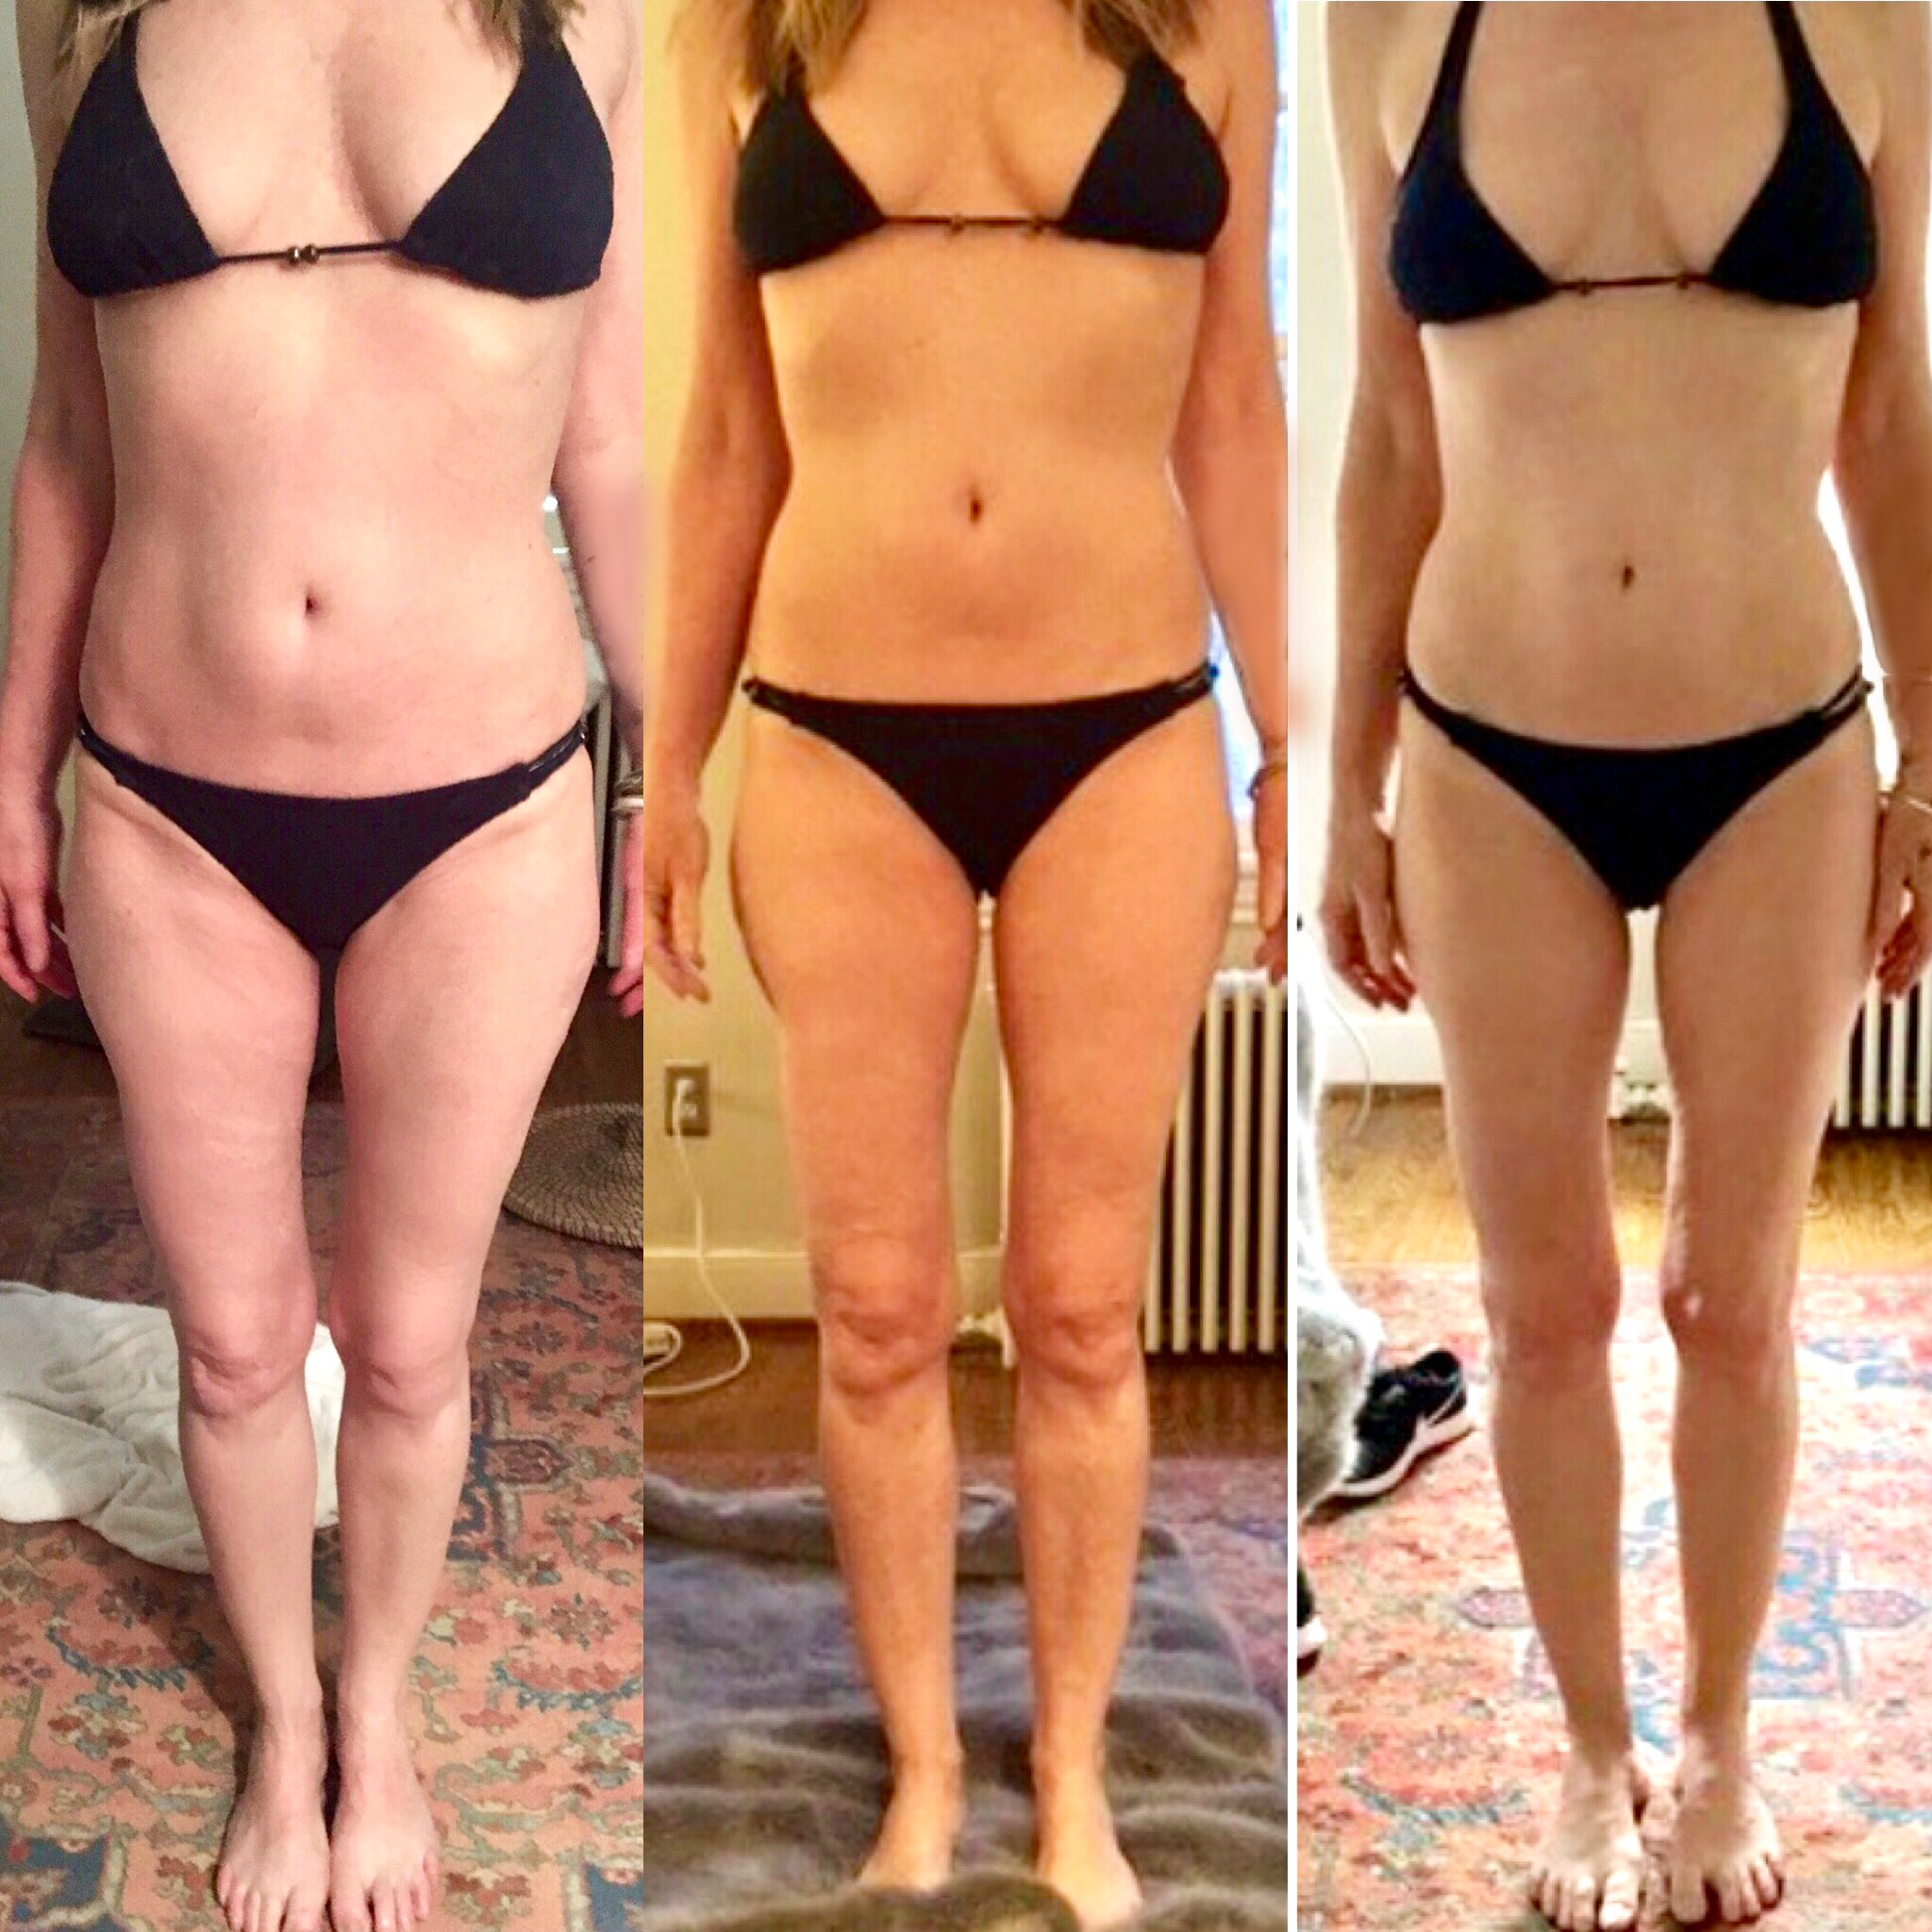 Weight loss transformation - newtritionny.com